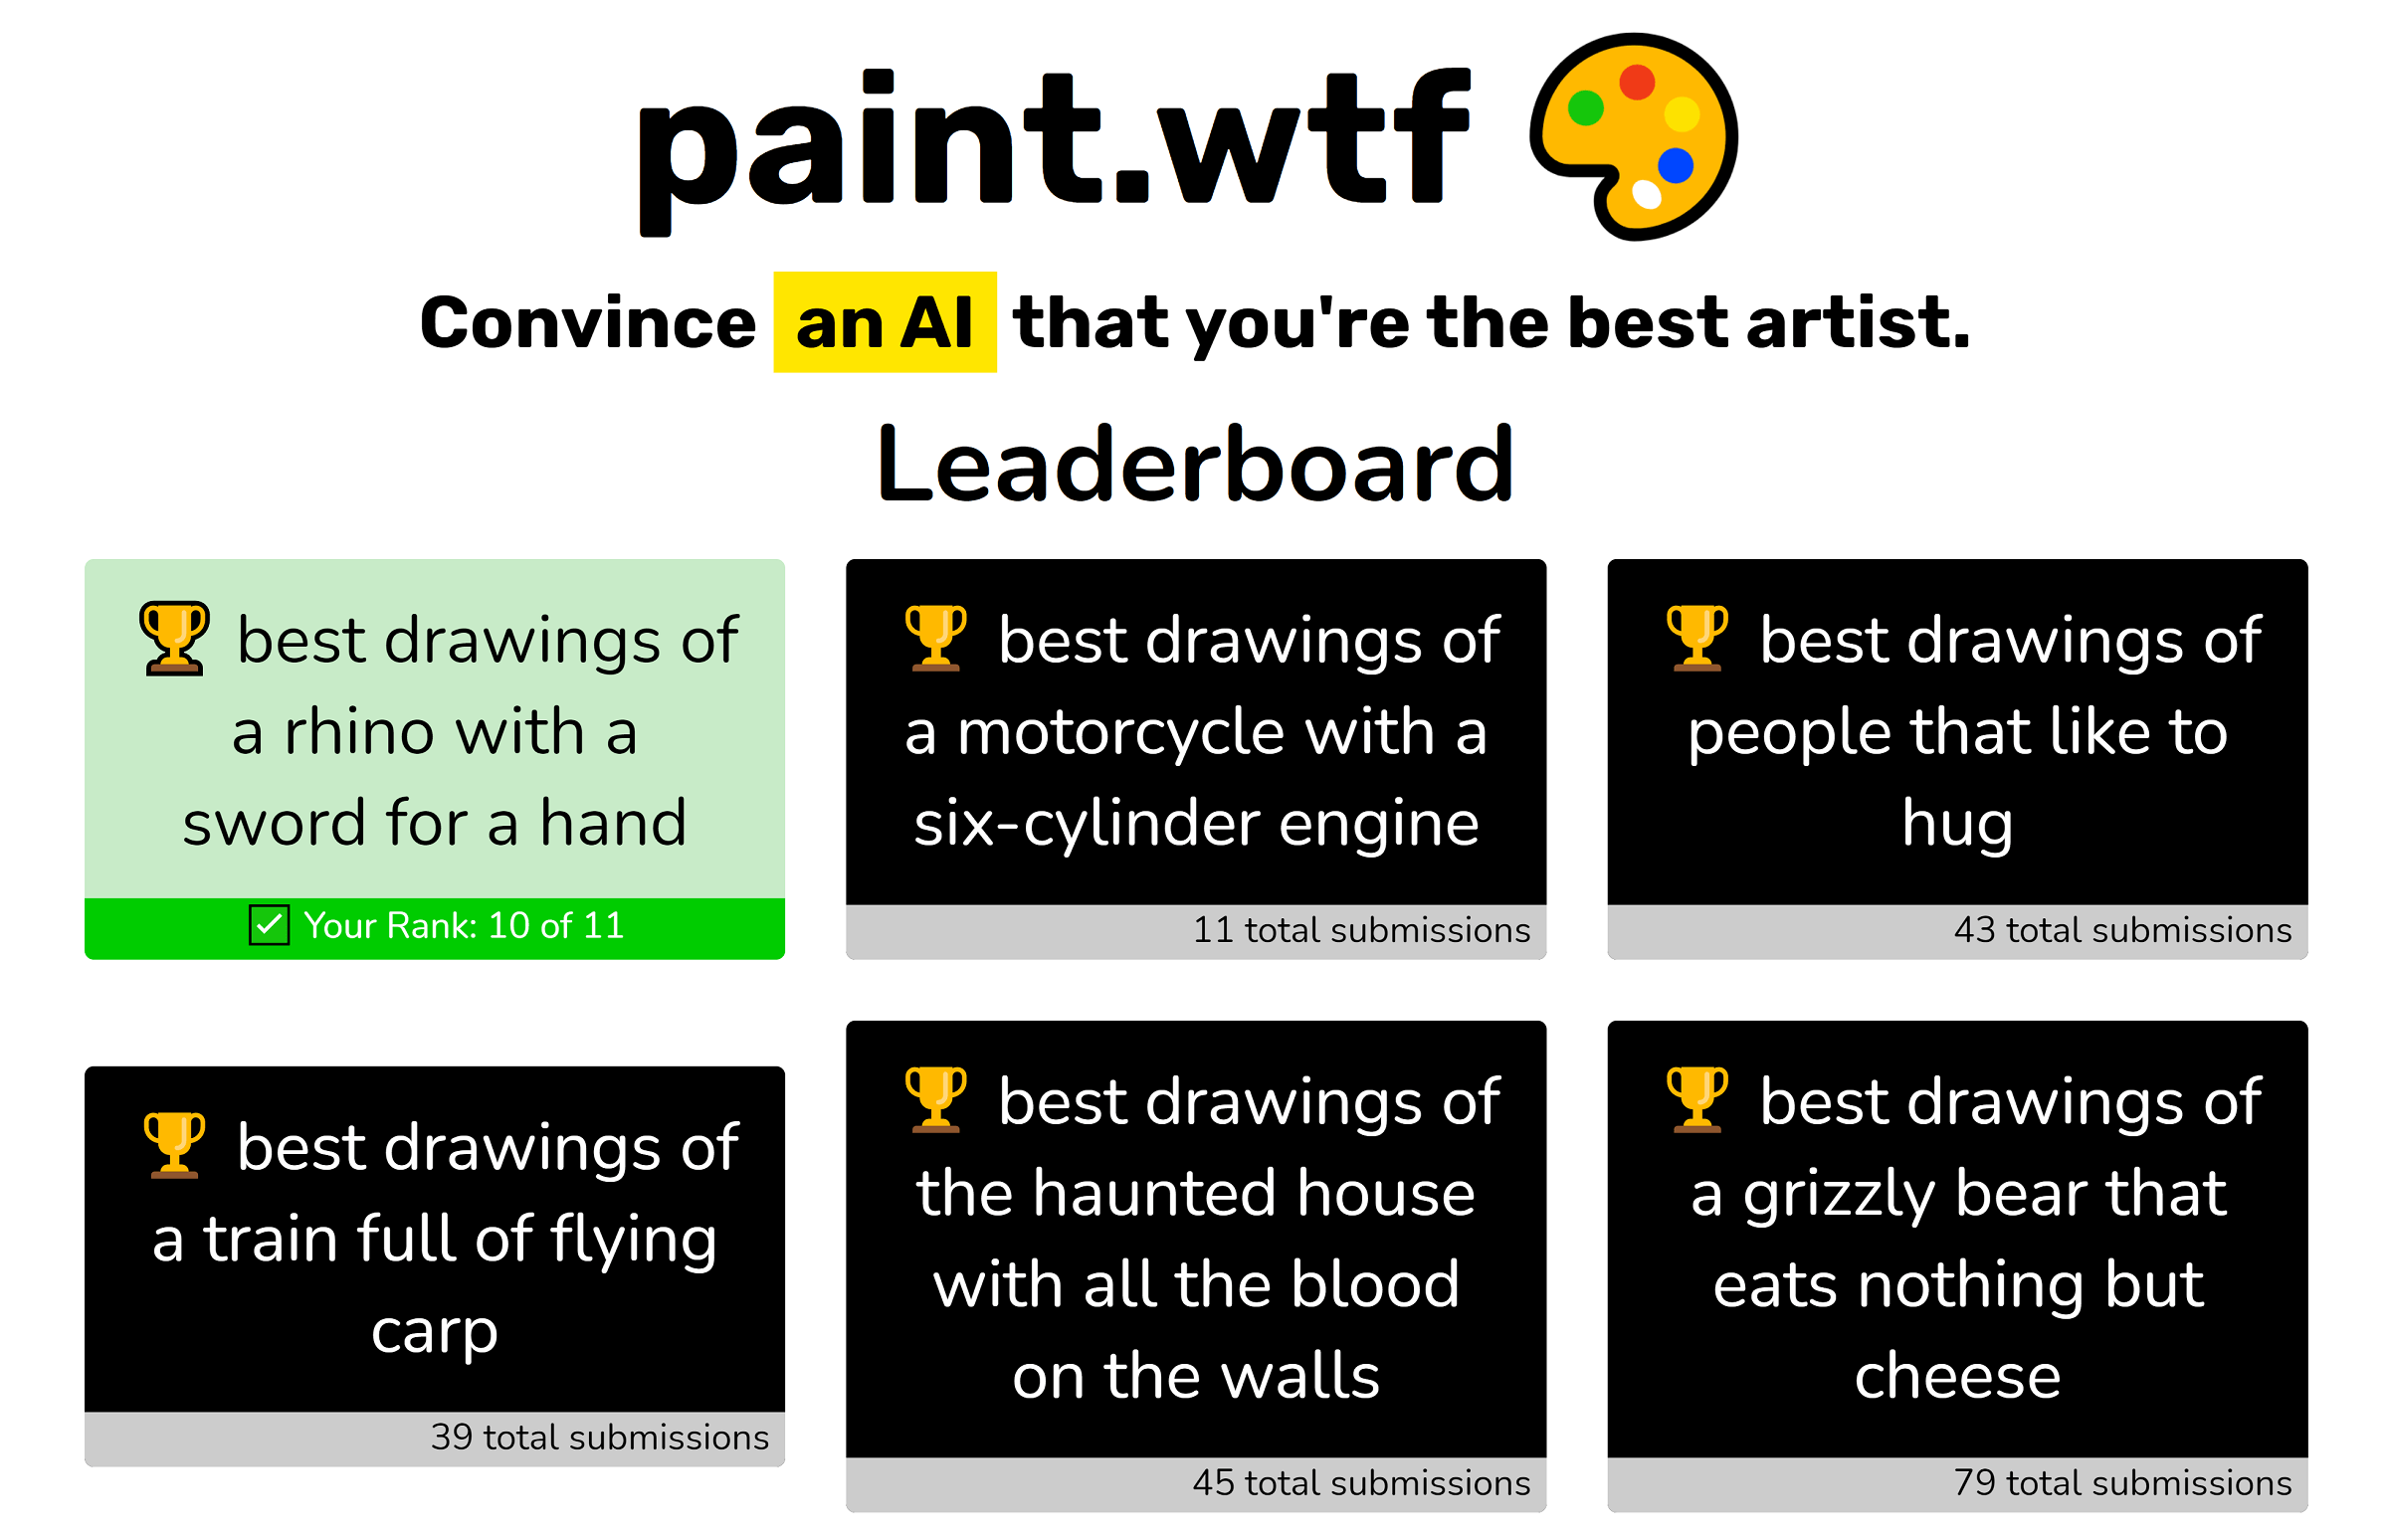 paint.wtf: A Drawing Game With an AI Judge